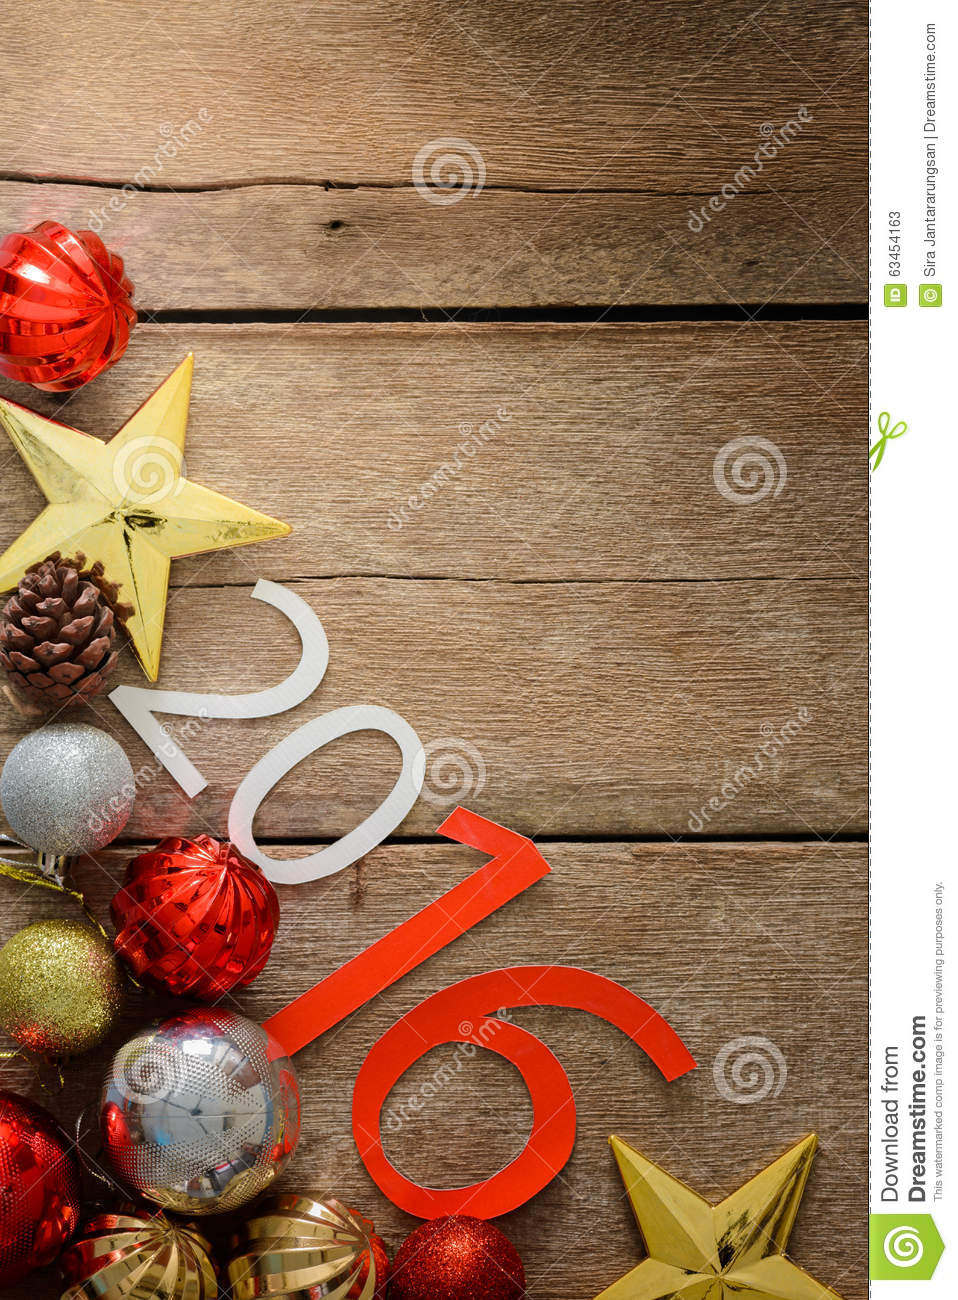 Letters 2016 And Decorated Christmas Tree On Wooden Wall Stock Photo gmnnX9yI